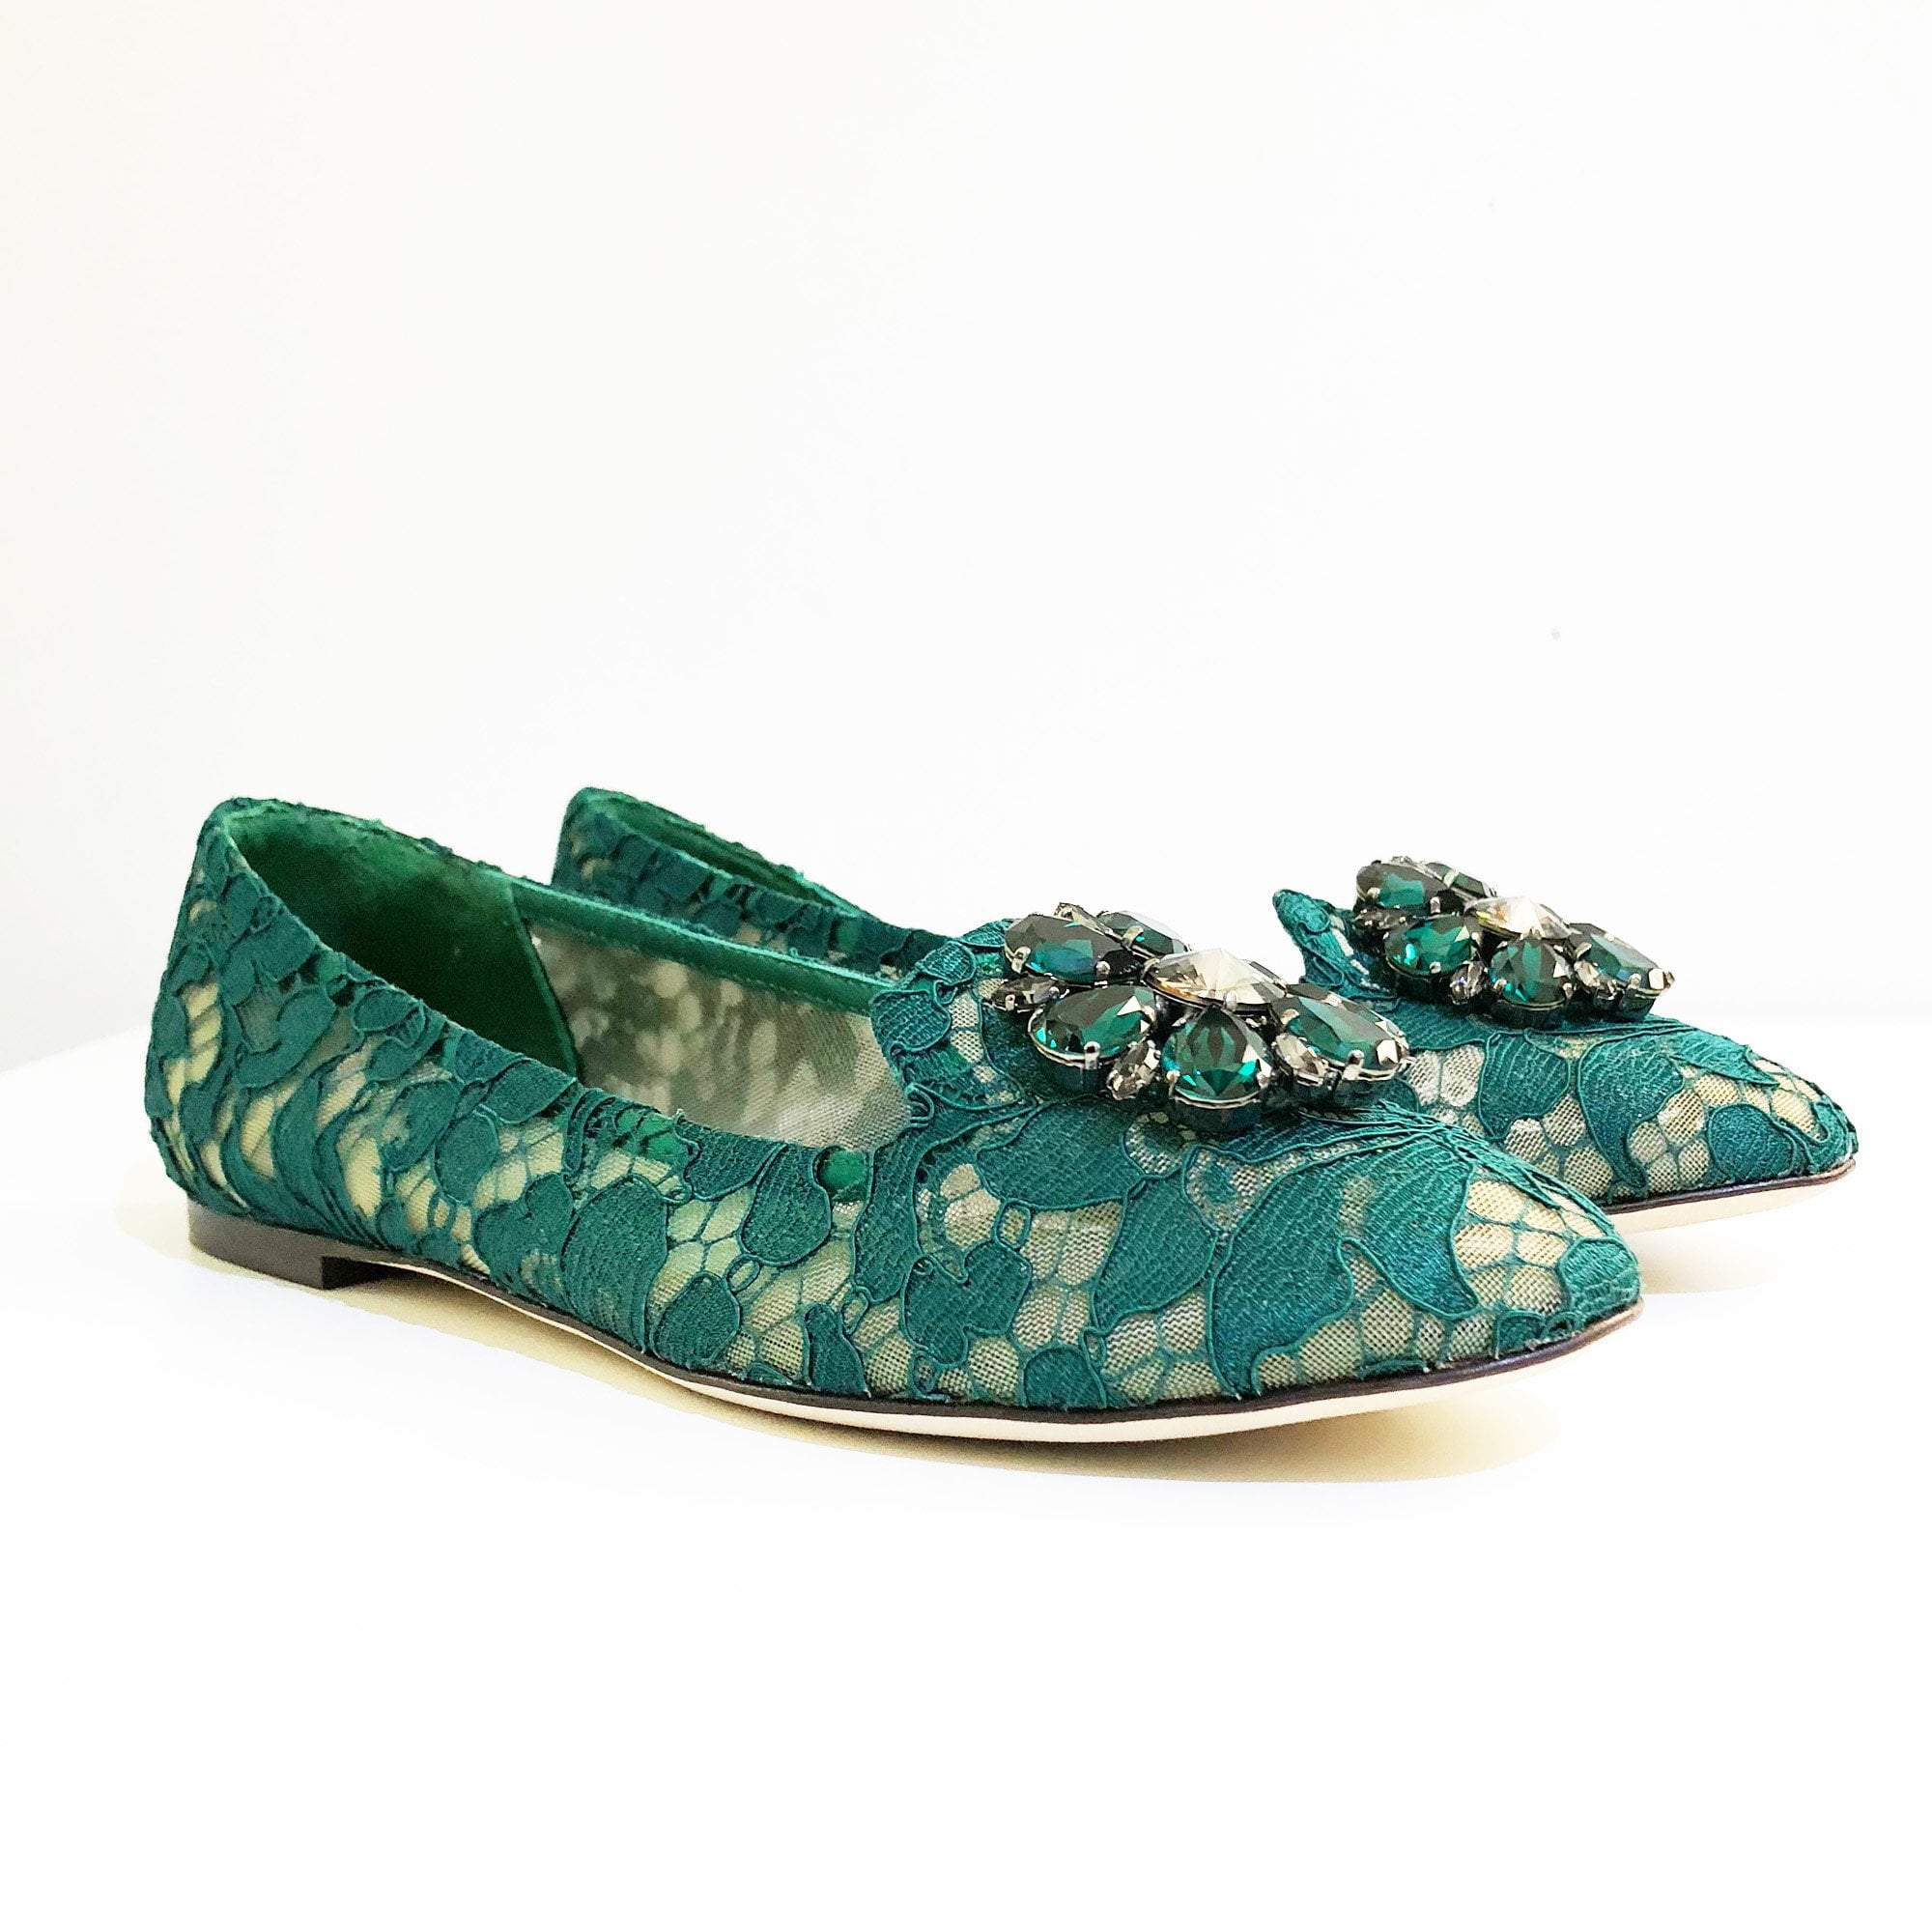 Dolce & Gabbana Green Vally Embellished Lace Ballerinas